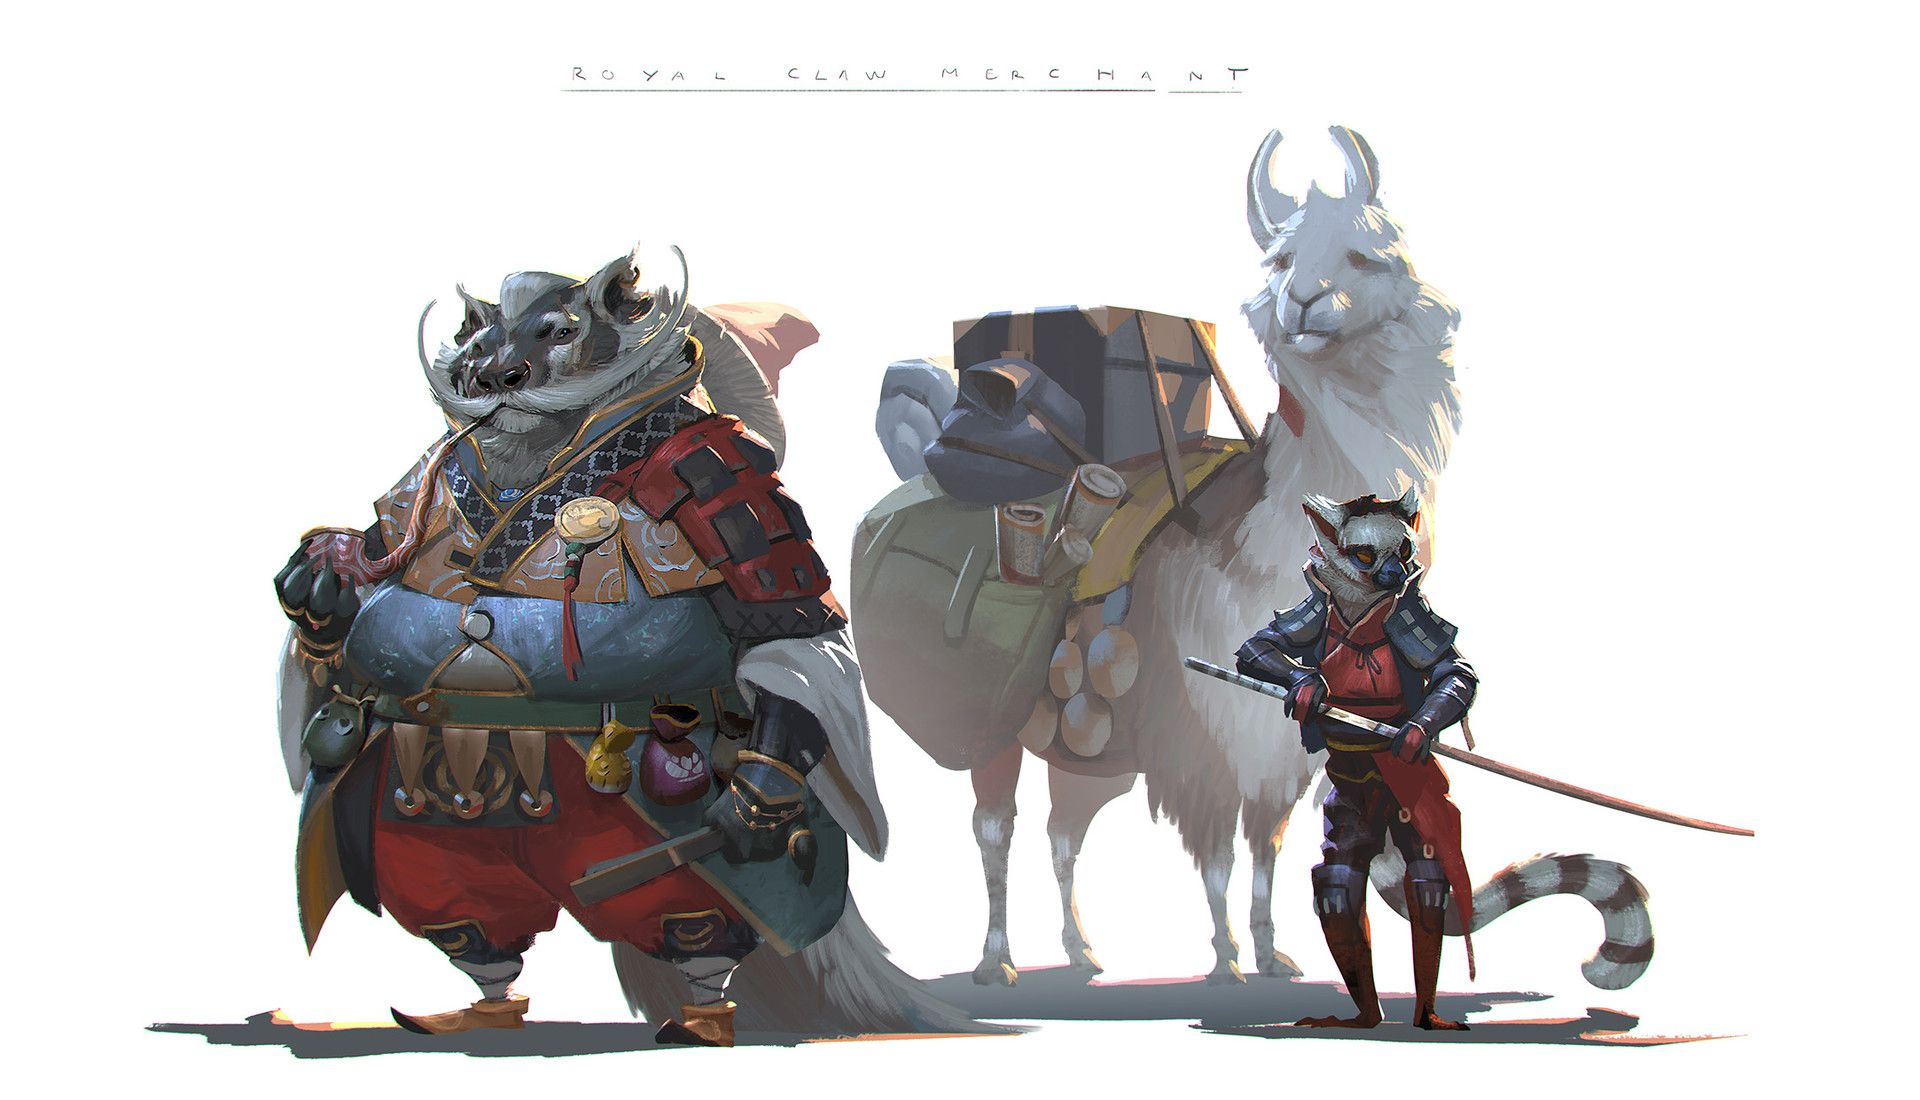 Merchant And Local Soldier Is Subject That I Love To Explore They Are Always Exis Fantasy Character Design Concept Art Characters Character Design Inspiration